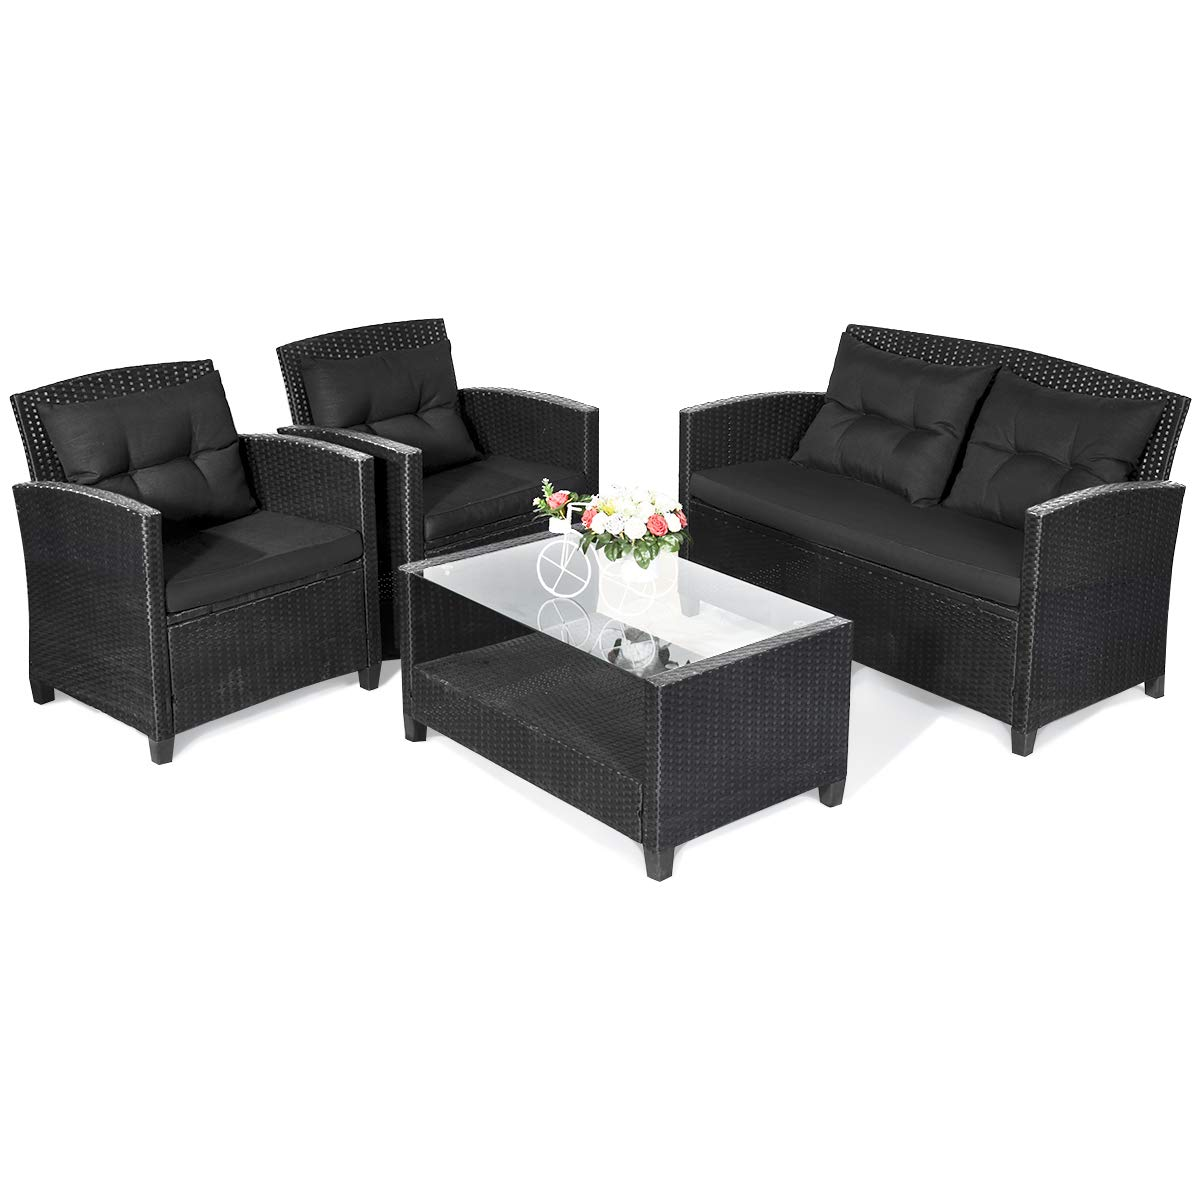 Black Tempered Glass Top Table with Storage Outdoor Rattan Sectional Sofa Set Comfortable Thick Cushioned Loveseat /& 2 Chairs Garden Lawn Wicker Patio Set Tangkula 4 PCS Patio Conversation Set